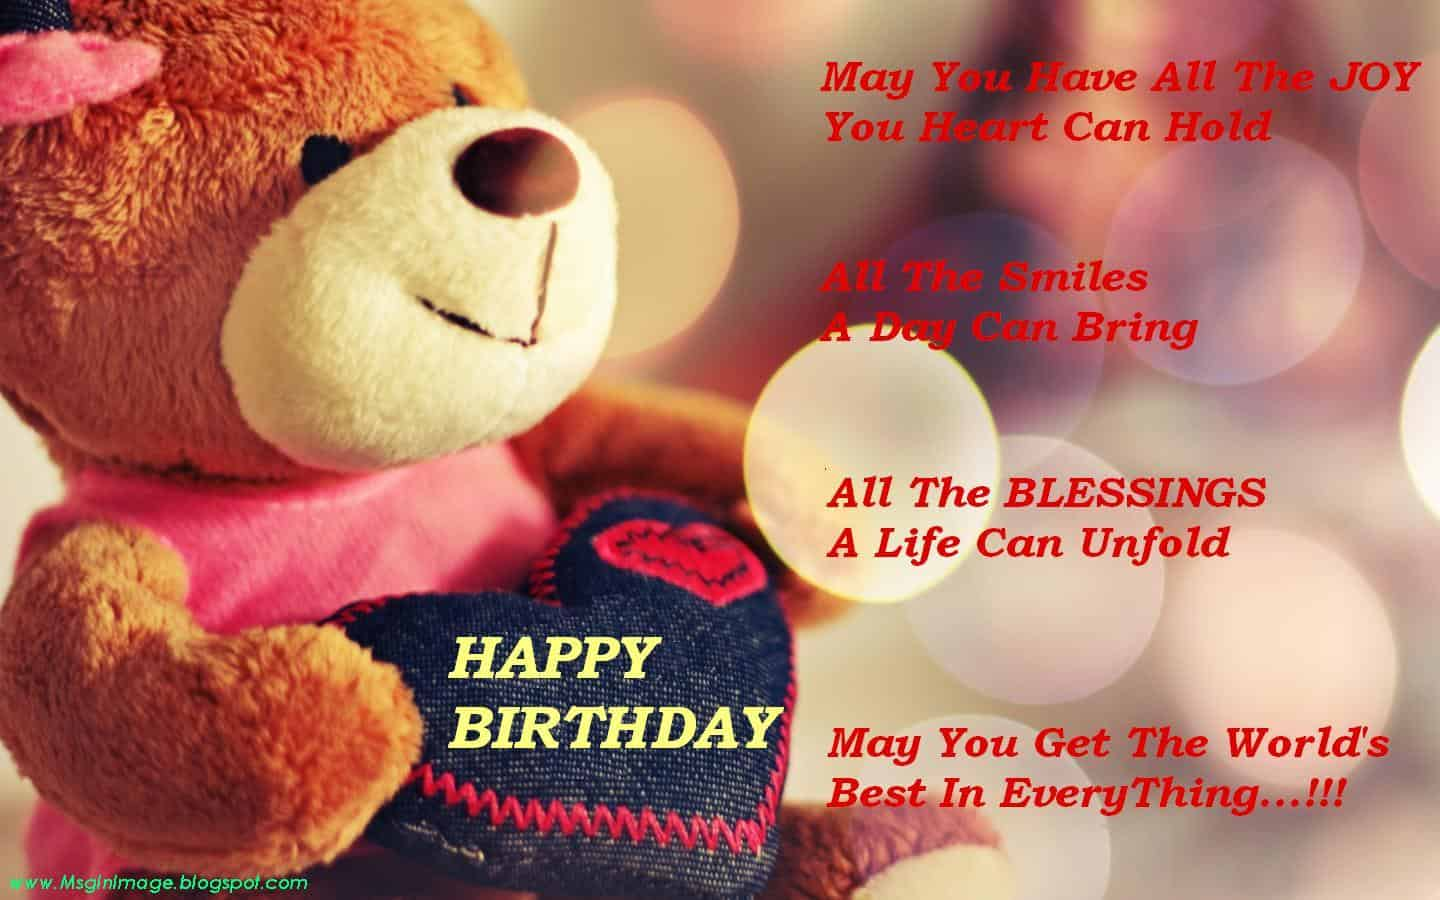 This teddy is for you! Happy Birthday dear ♥